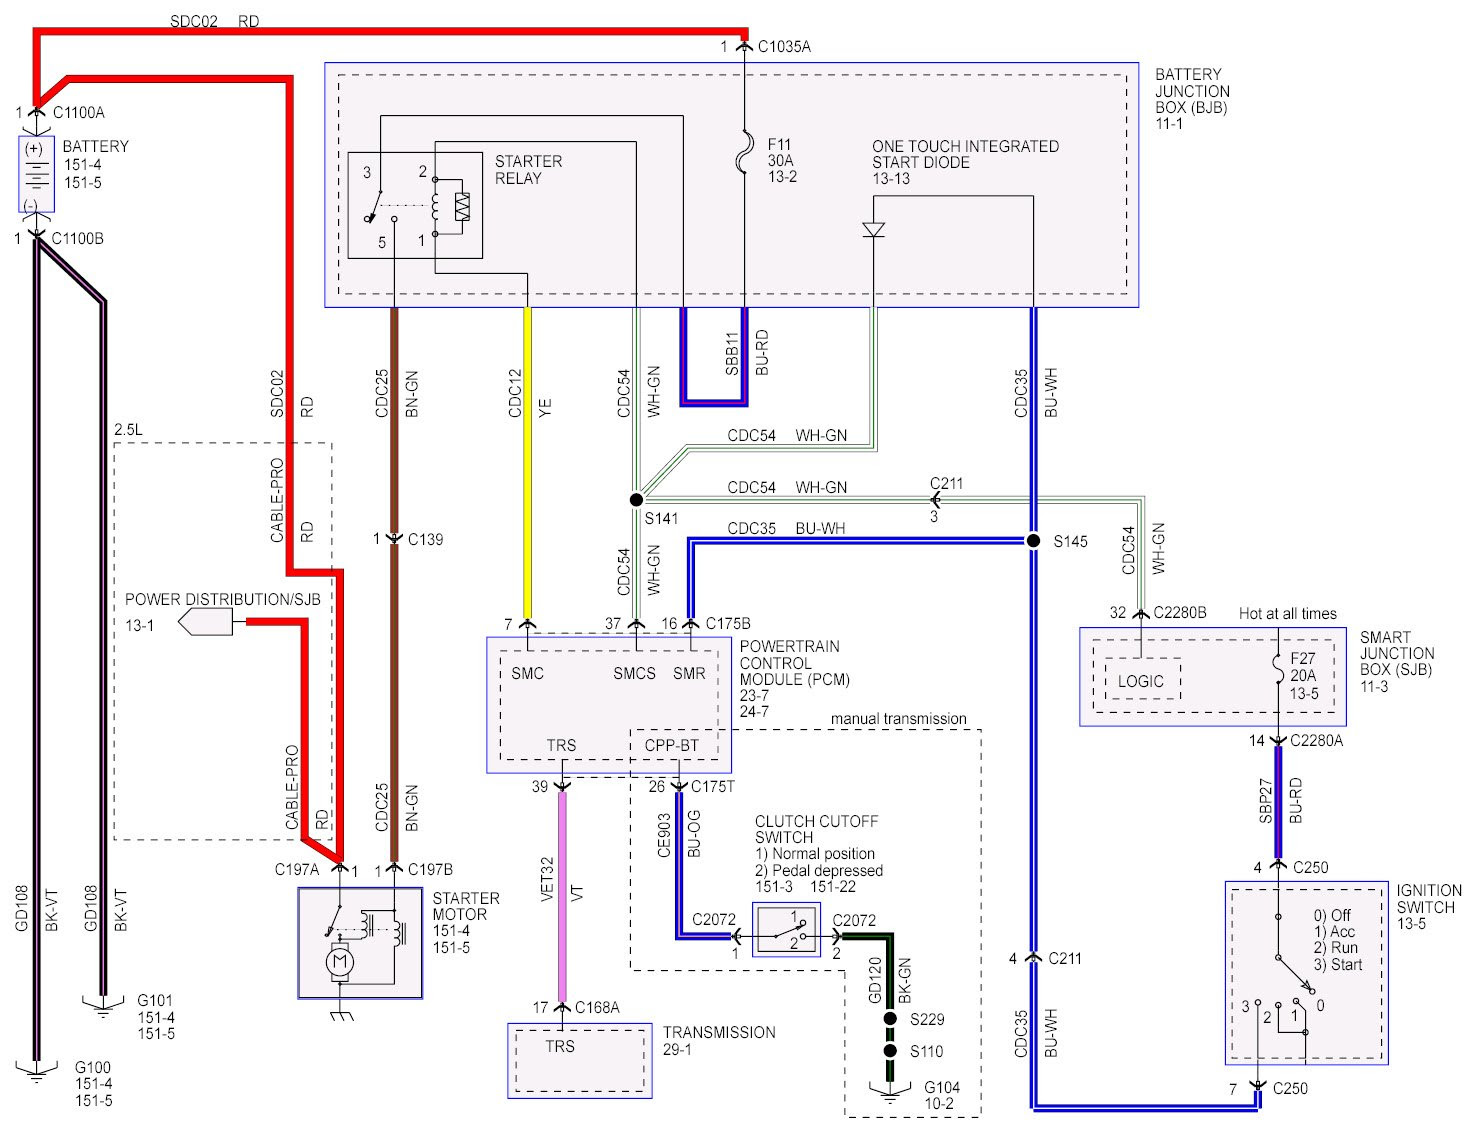 Diagram 04 Ford Escape Electrical Wiring Diagrams Full Version Hd Quality Wiring Diagrams Tvschematics Investinlazio It